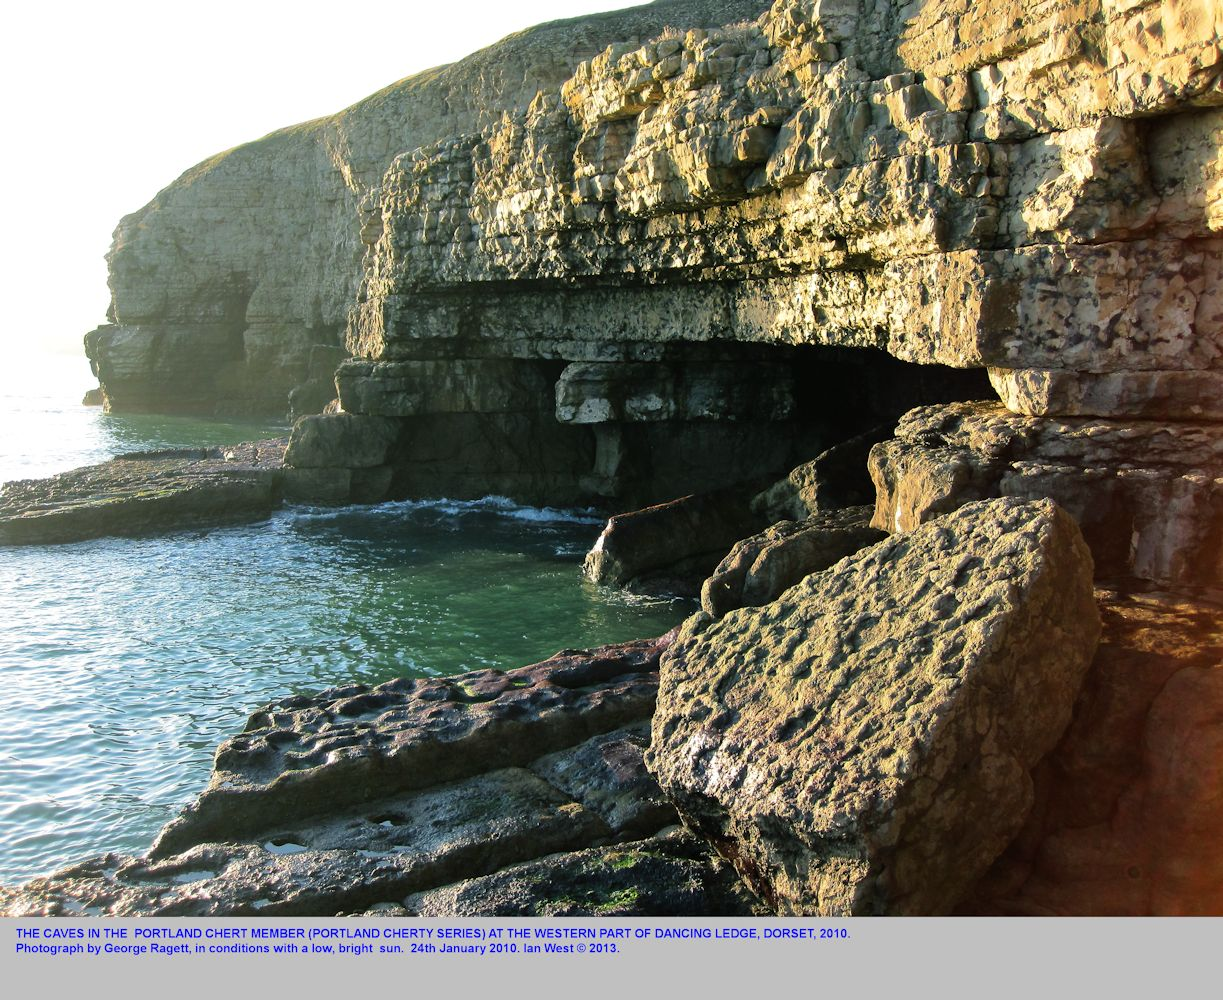 Large sea caves at the western end of the lower ledge of Dancing Ledge, near Swanage, Isle of Purbeck, Dorset, 2010